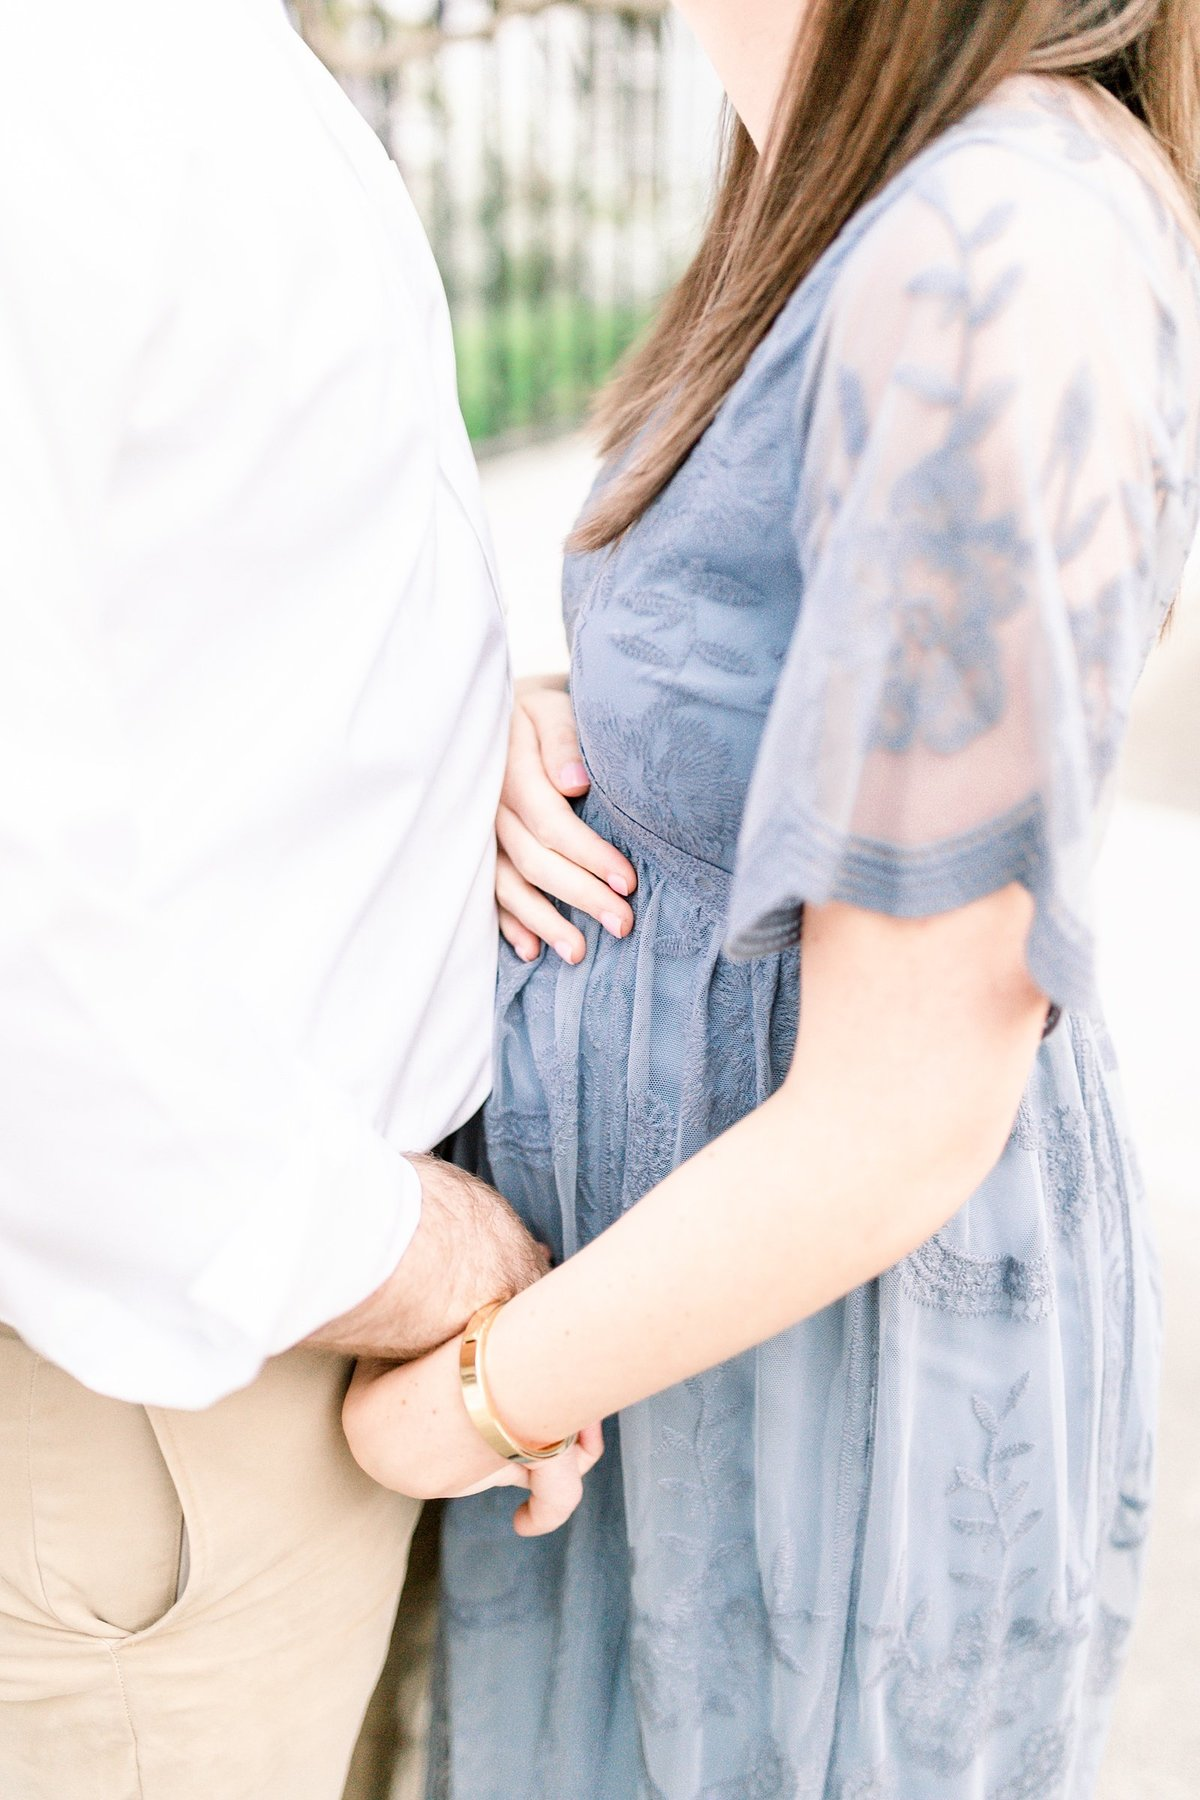 Downtown-Charleston-Maternity-Photographer_0015